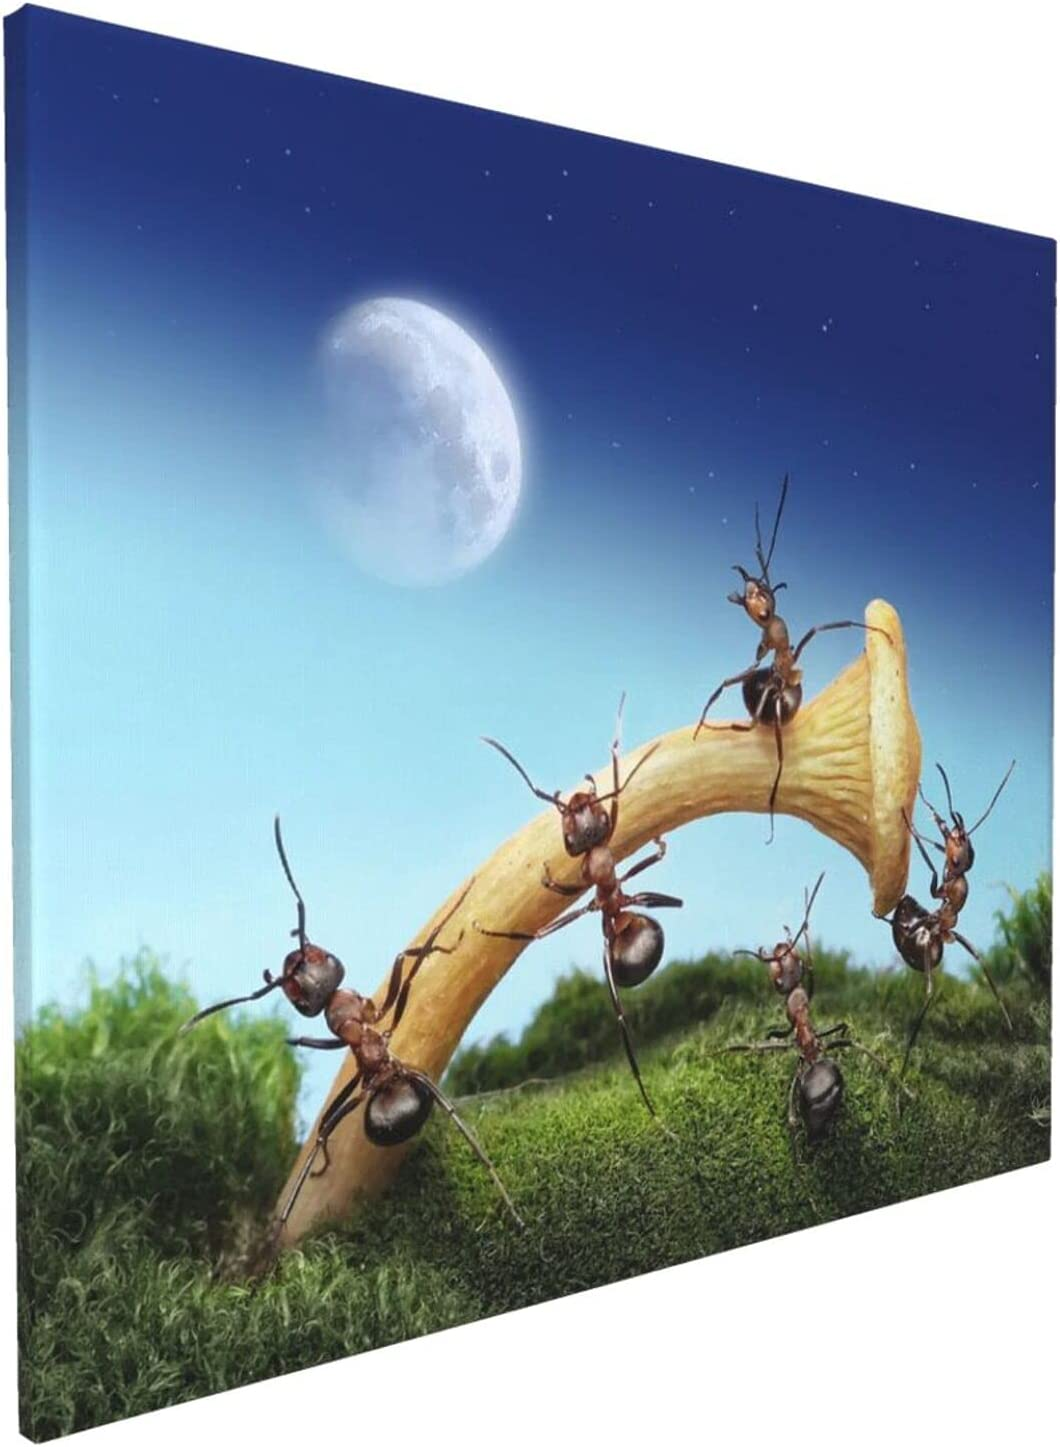 Missboom Wall Art Theme Funny Recommended Paint Painting Carrying Ant Spray Credence